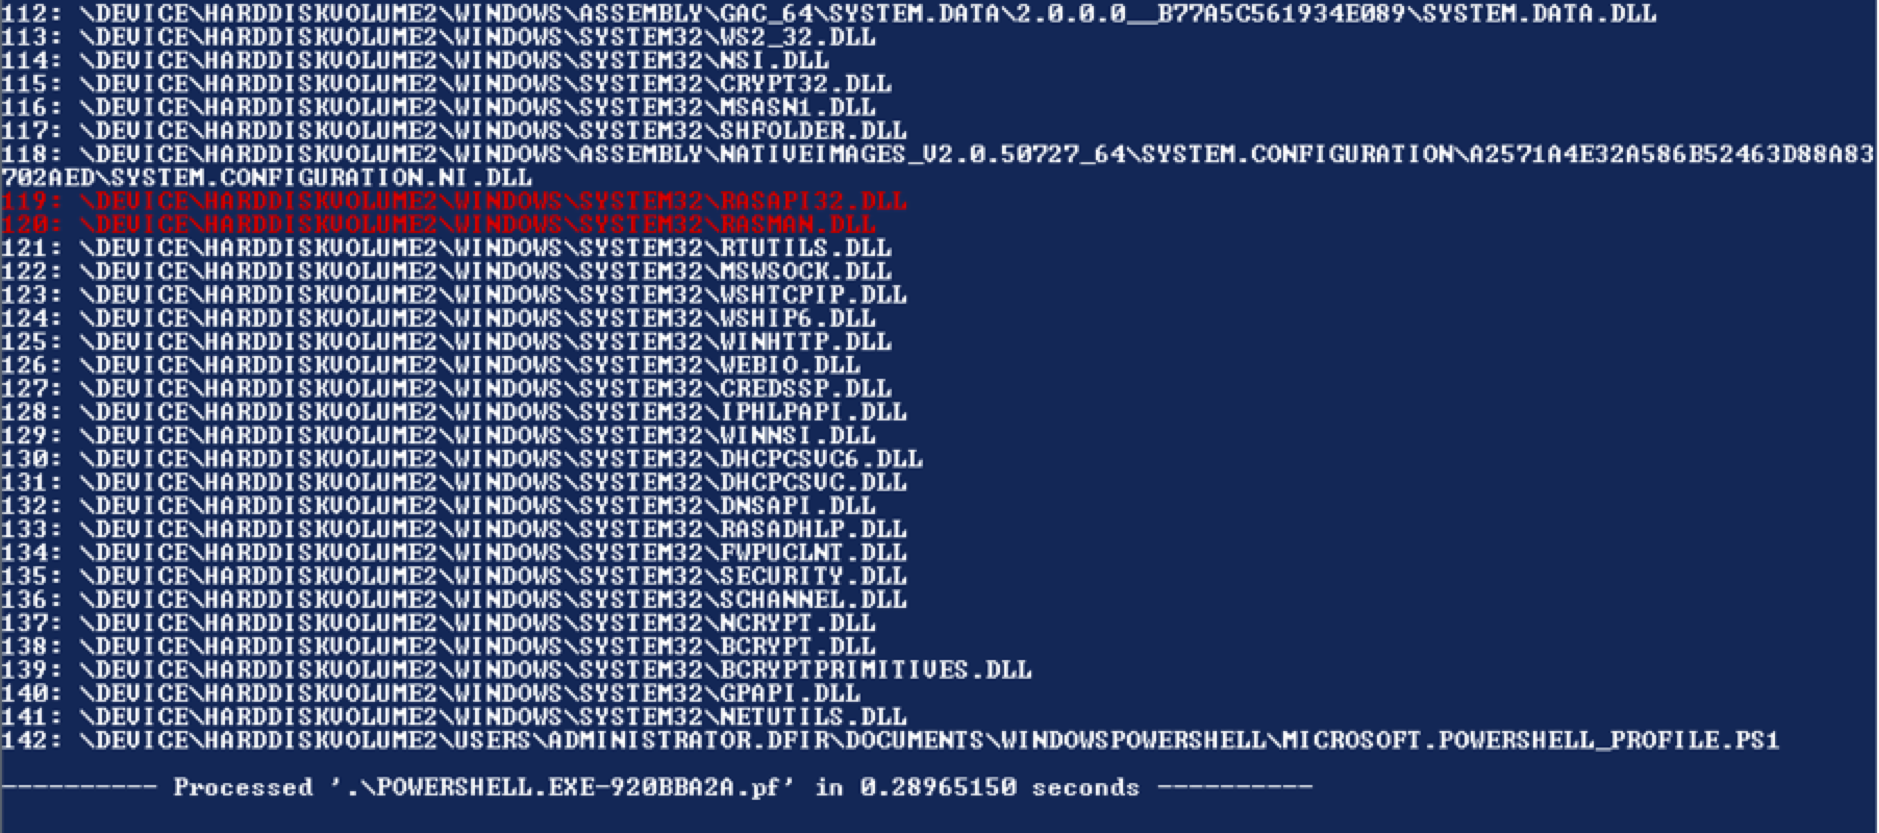 Evidence of Execution - Powershell Webclient method